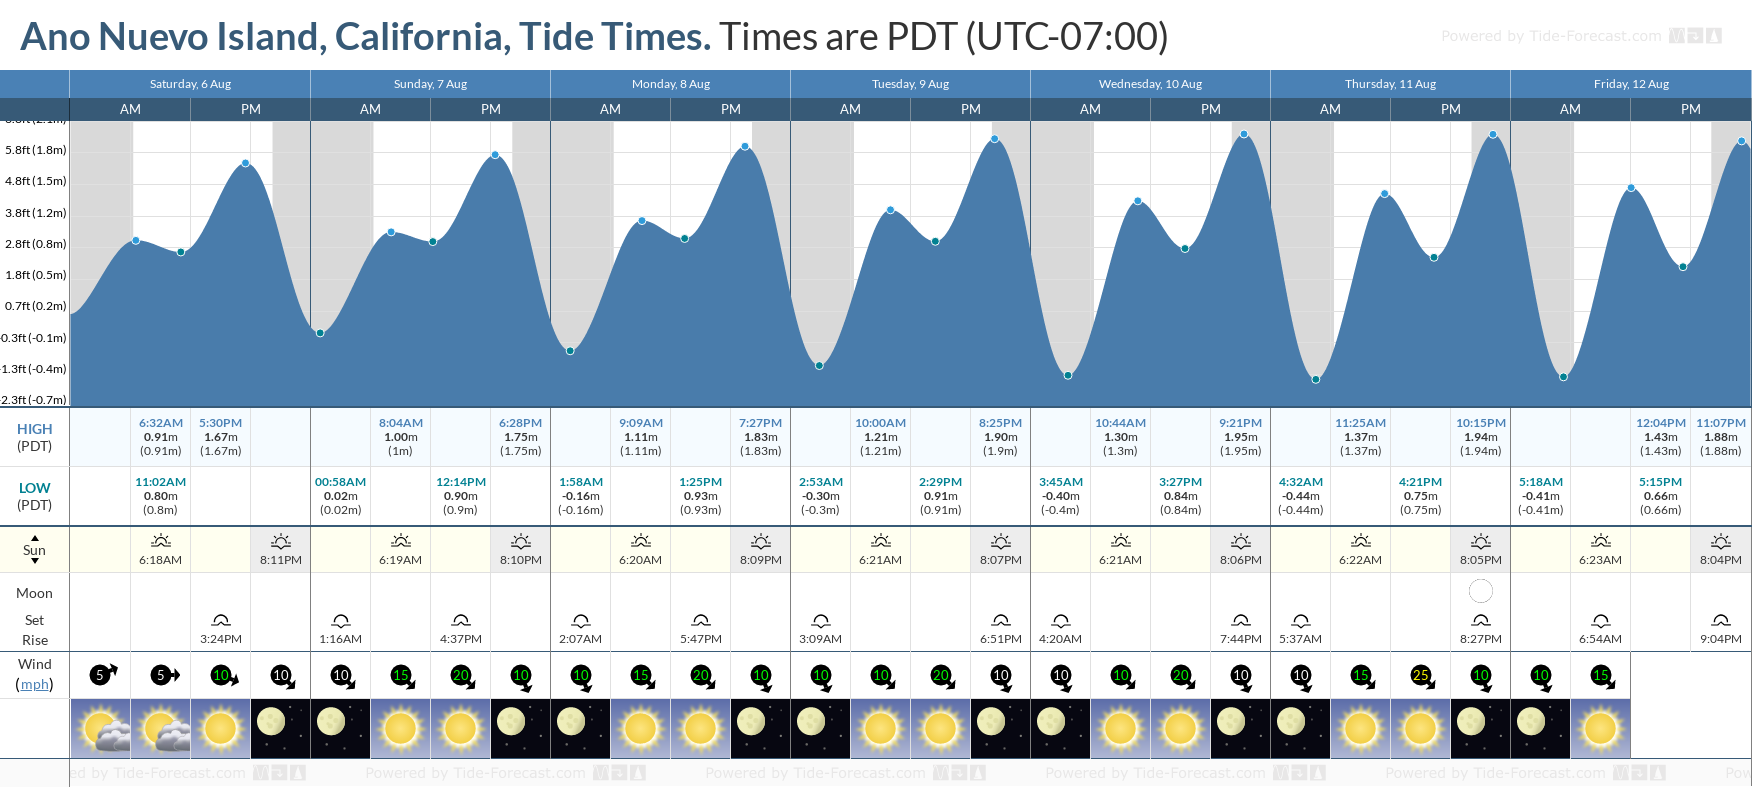 Tide Times And Tide Chart For Ano Nuevo Island